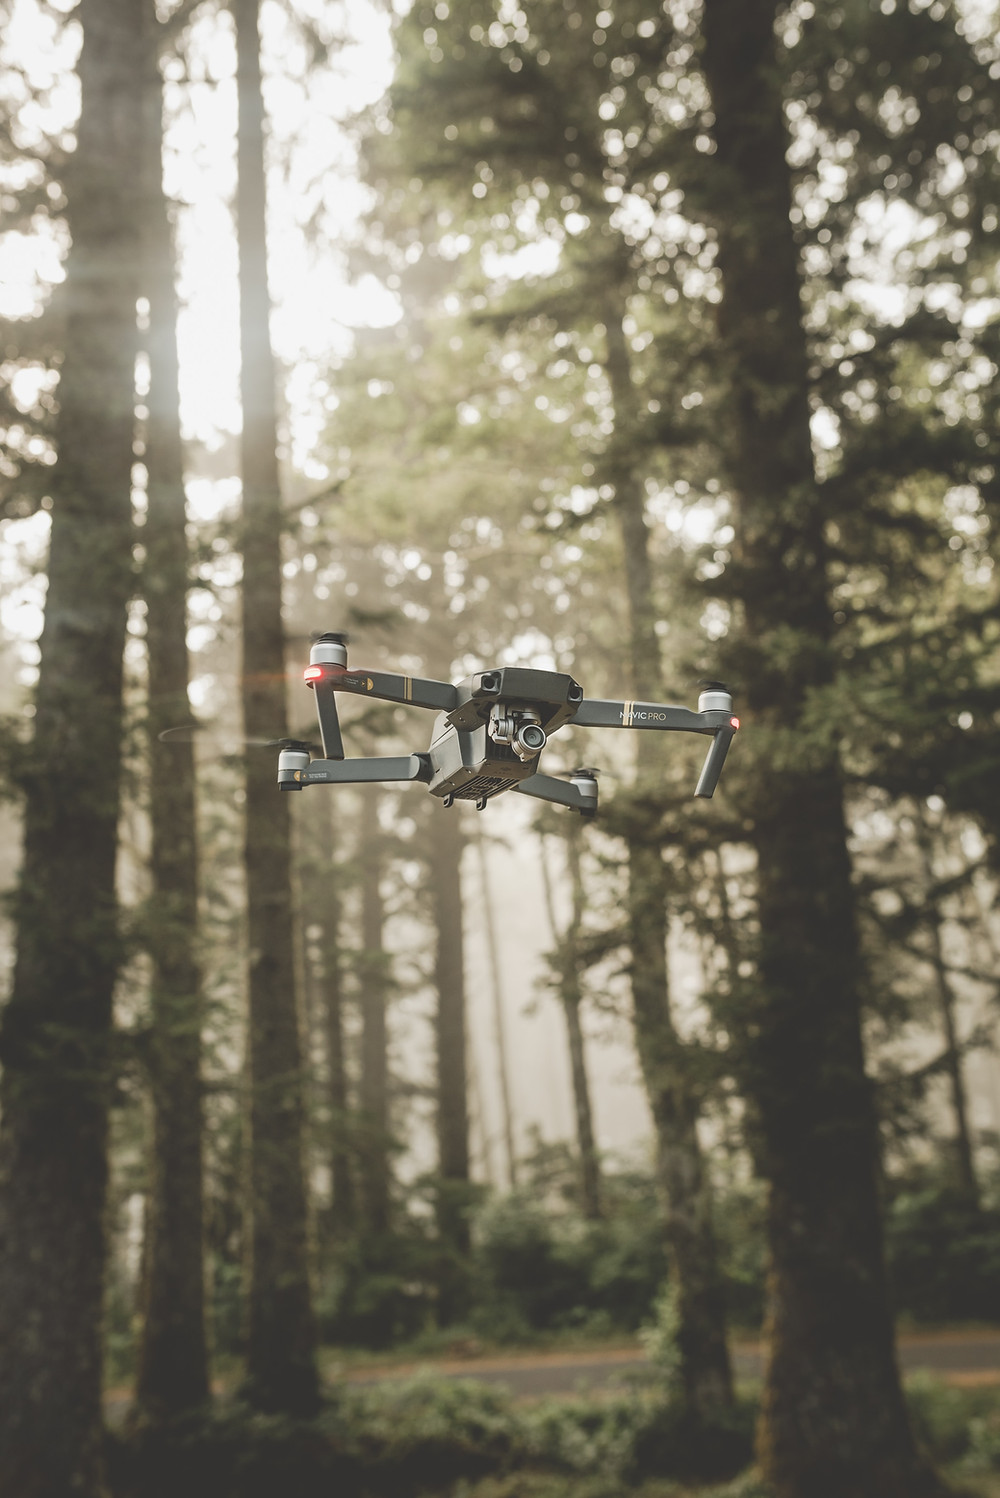 Picture of a drone flying in a forest